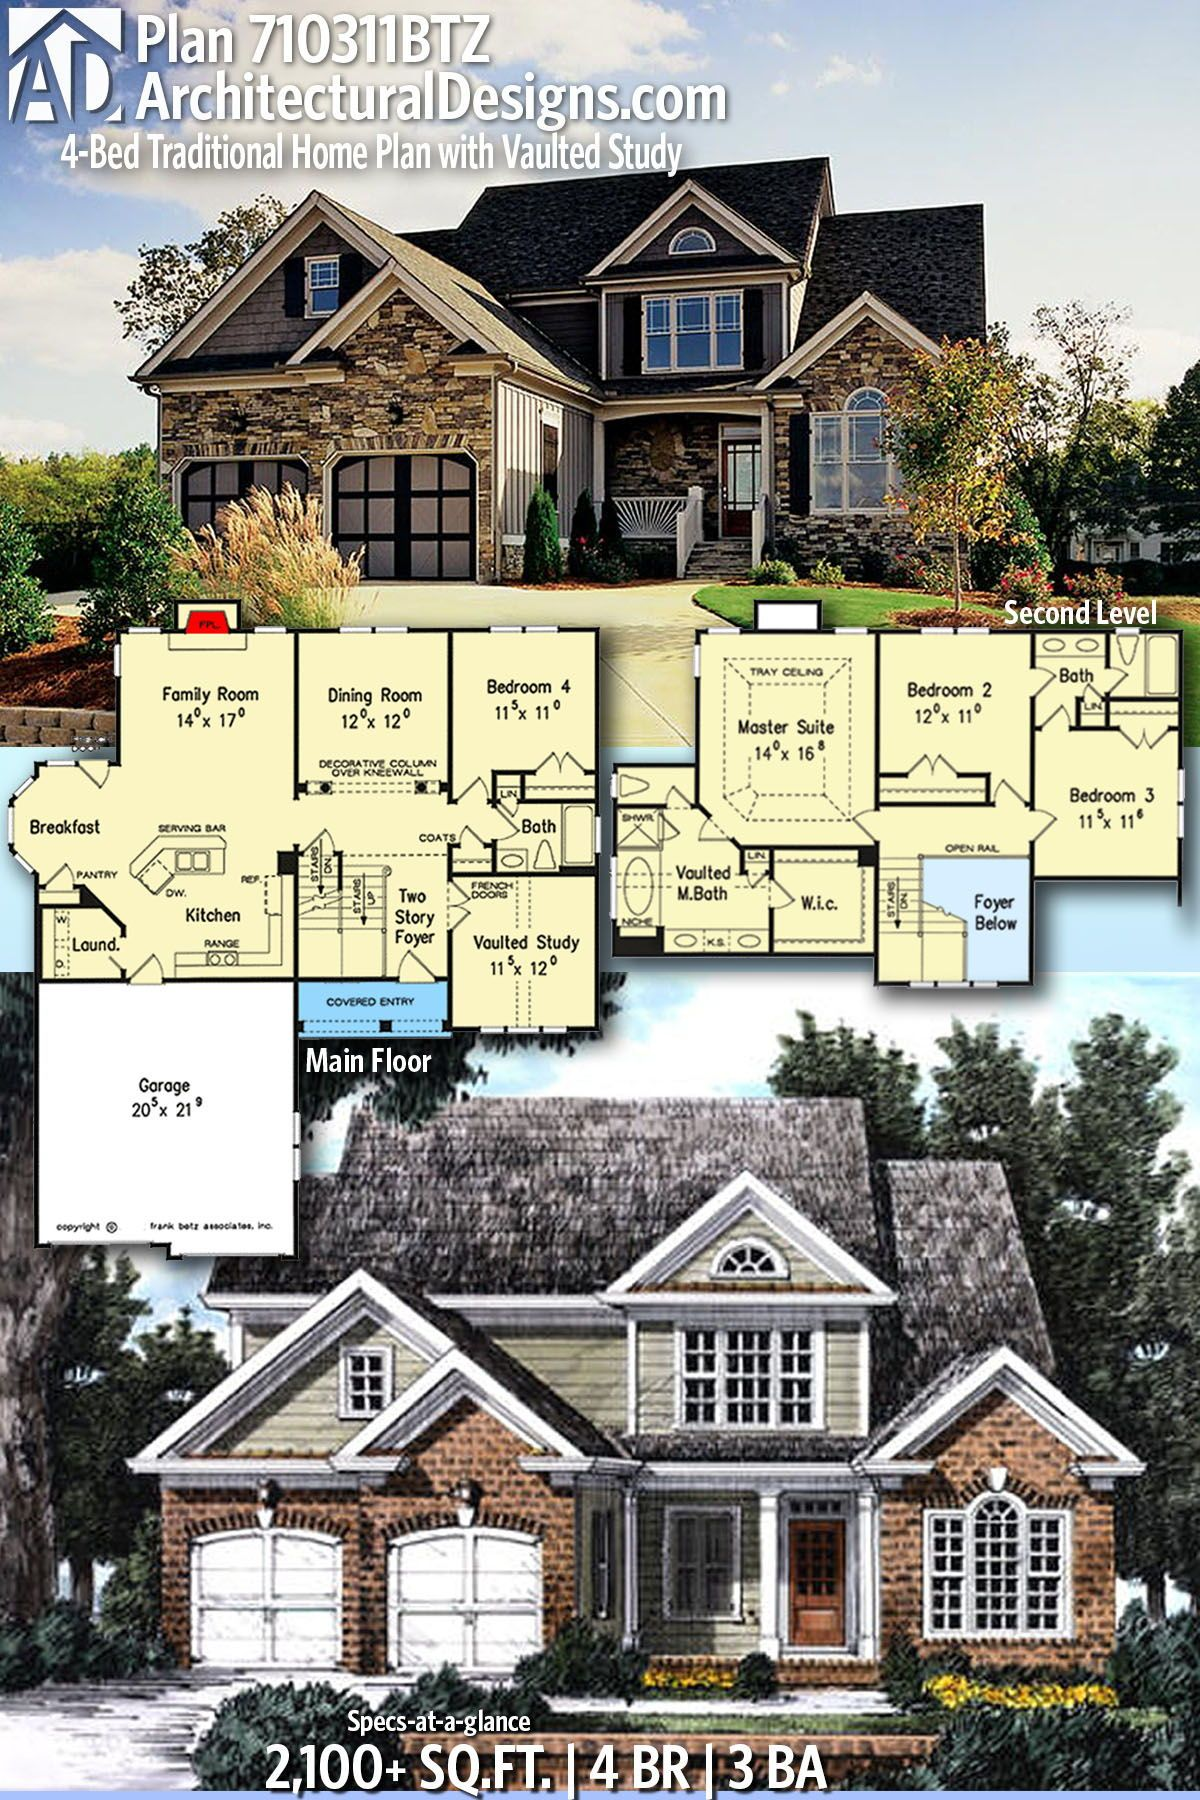 Plan 710311btz 4 Bed Traditional Home Plan With Vaulted Study